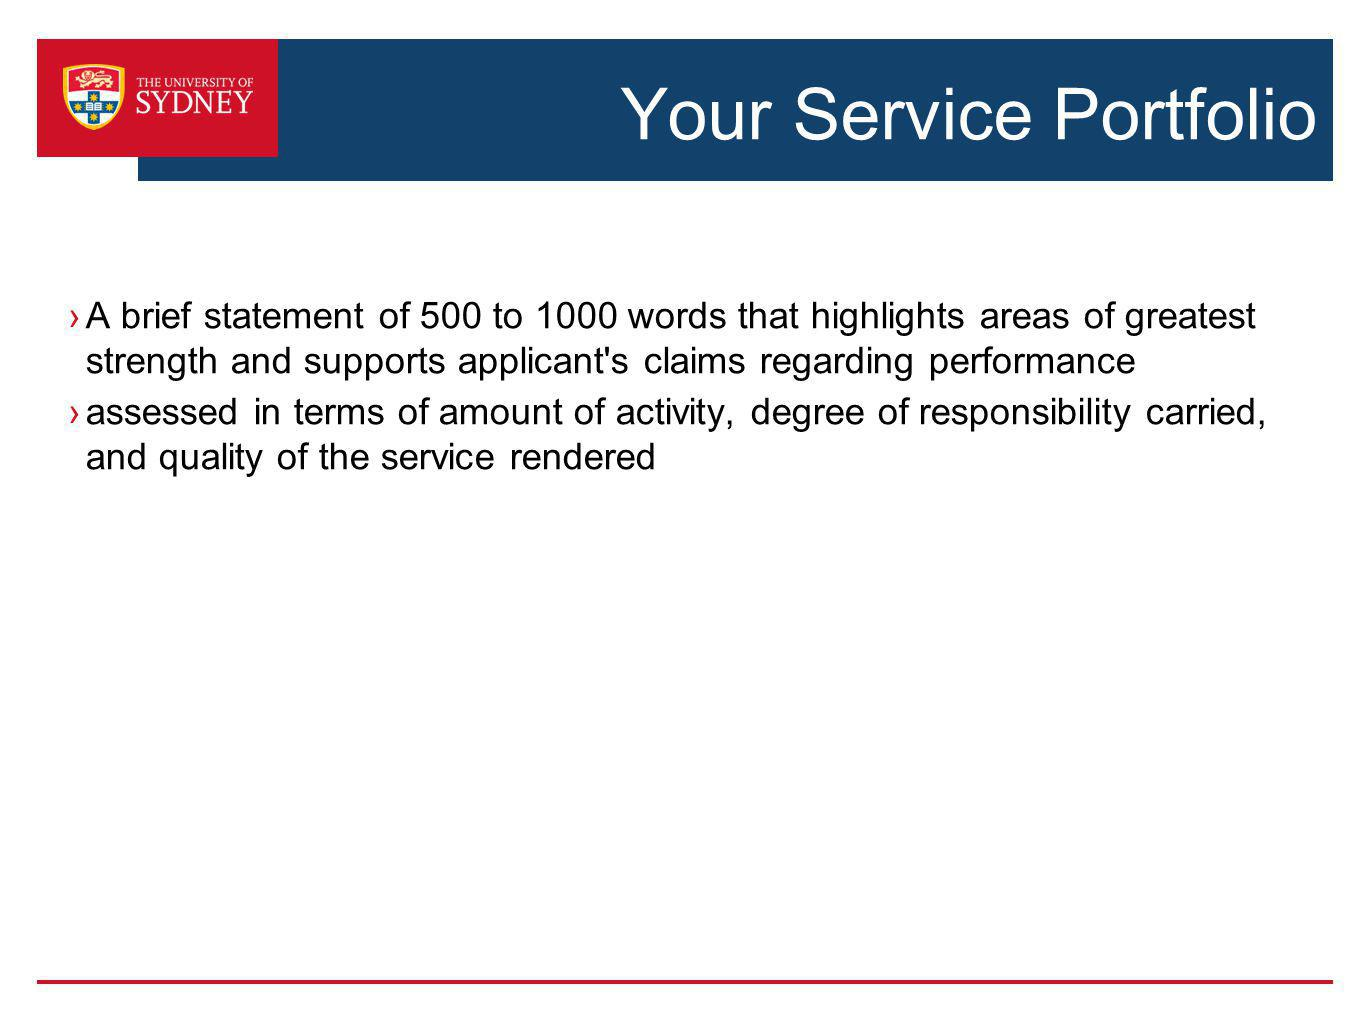 Your Service Portfolio A brief statement of 500 to 1000 words that highlights areas of greatest strength and supports applicant s claims regarding performance assessed in terms of amount of activity, degree of responsibility carried, and quality of the service rendered